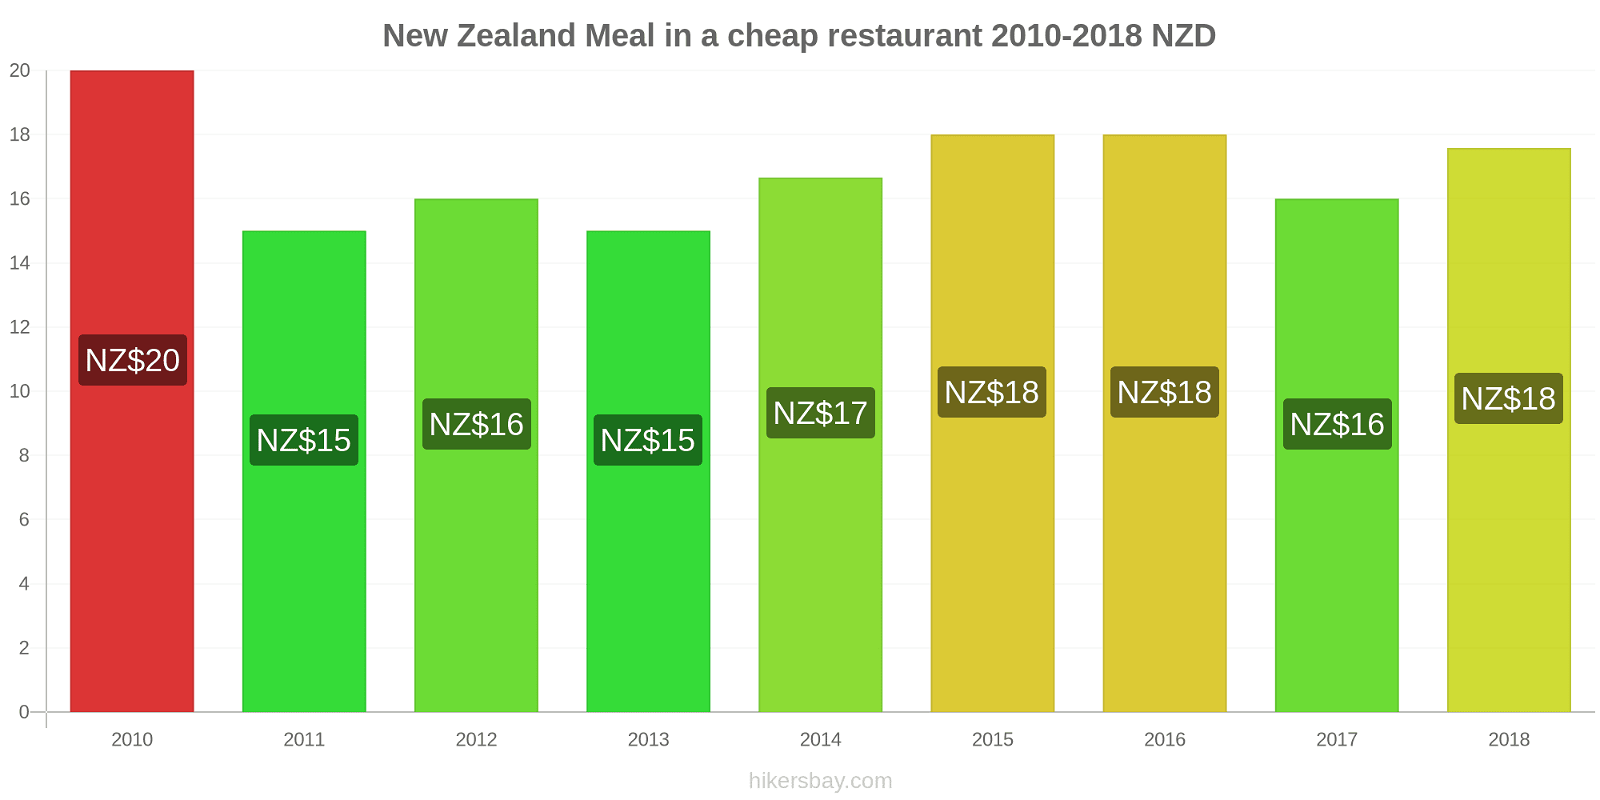 New Zealand price changes Meal in a cheap restaurant hikersbay.com